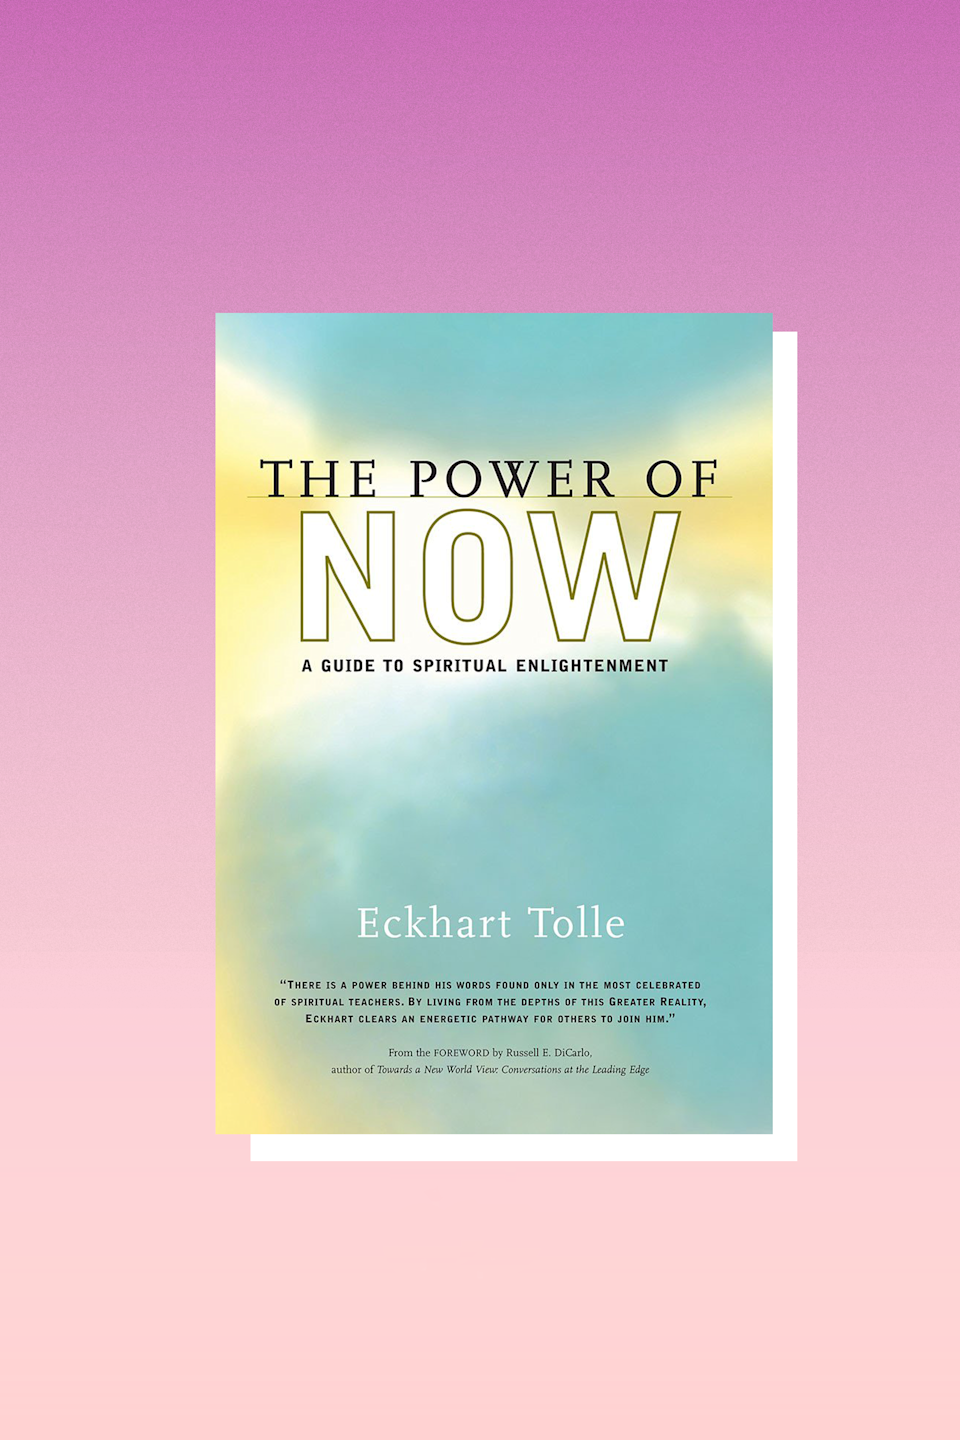 """If you haven't read this monumental self-help book before, after a breakup is the perfect time because it focuses on living in the moment, not ruminating in the past. It's infused with wisdom about how to look at yourself with love and compassion, which is so important when you're reeling from a breakup.<br><br>""""Love is not selective, just as the light of the sun is not selective. It does not make one person special. It is not exclusive. Exclusivity is not the love of God but the 'love' of ego. However, the intensity with which true love is felt can vary. There may be one person who reflects your love back to you more clearly and more intensely than others, and if that person feels the same toward you, it can be said that you are in a love relationship with him or her."""" – <em>The Power Of Now</em>"""